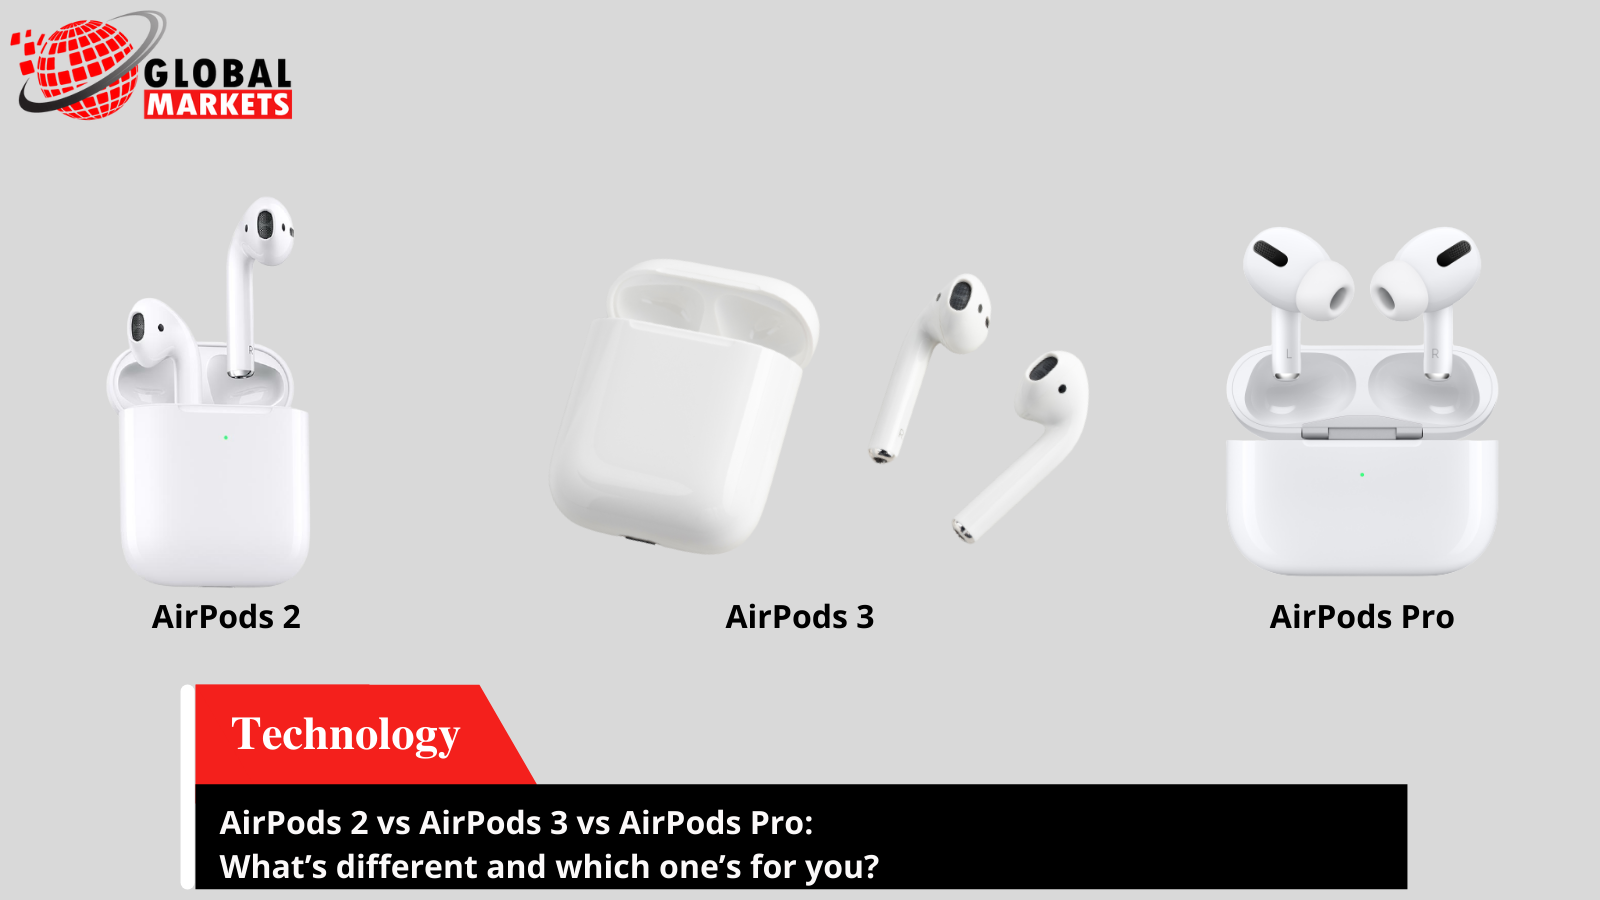 AirPods 2 vs AirPods 3 vs AirPods Pro: Difference and which one's for you?